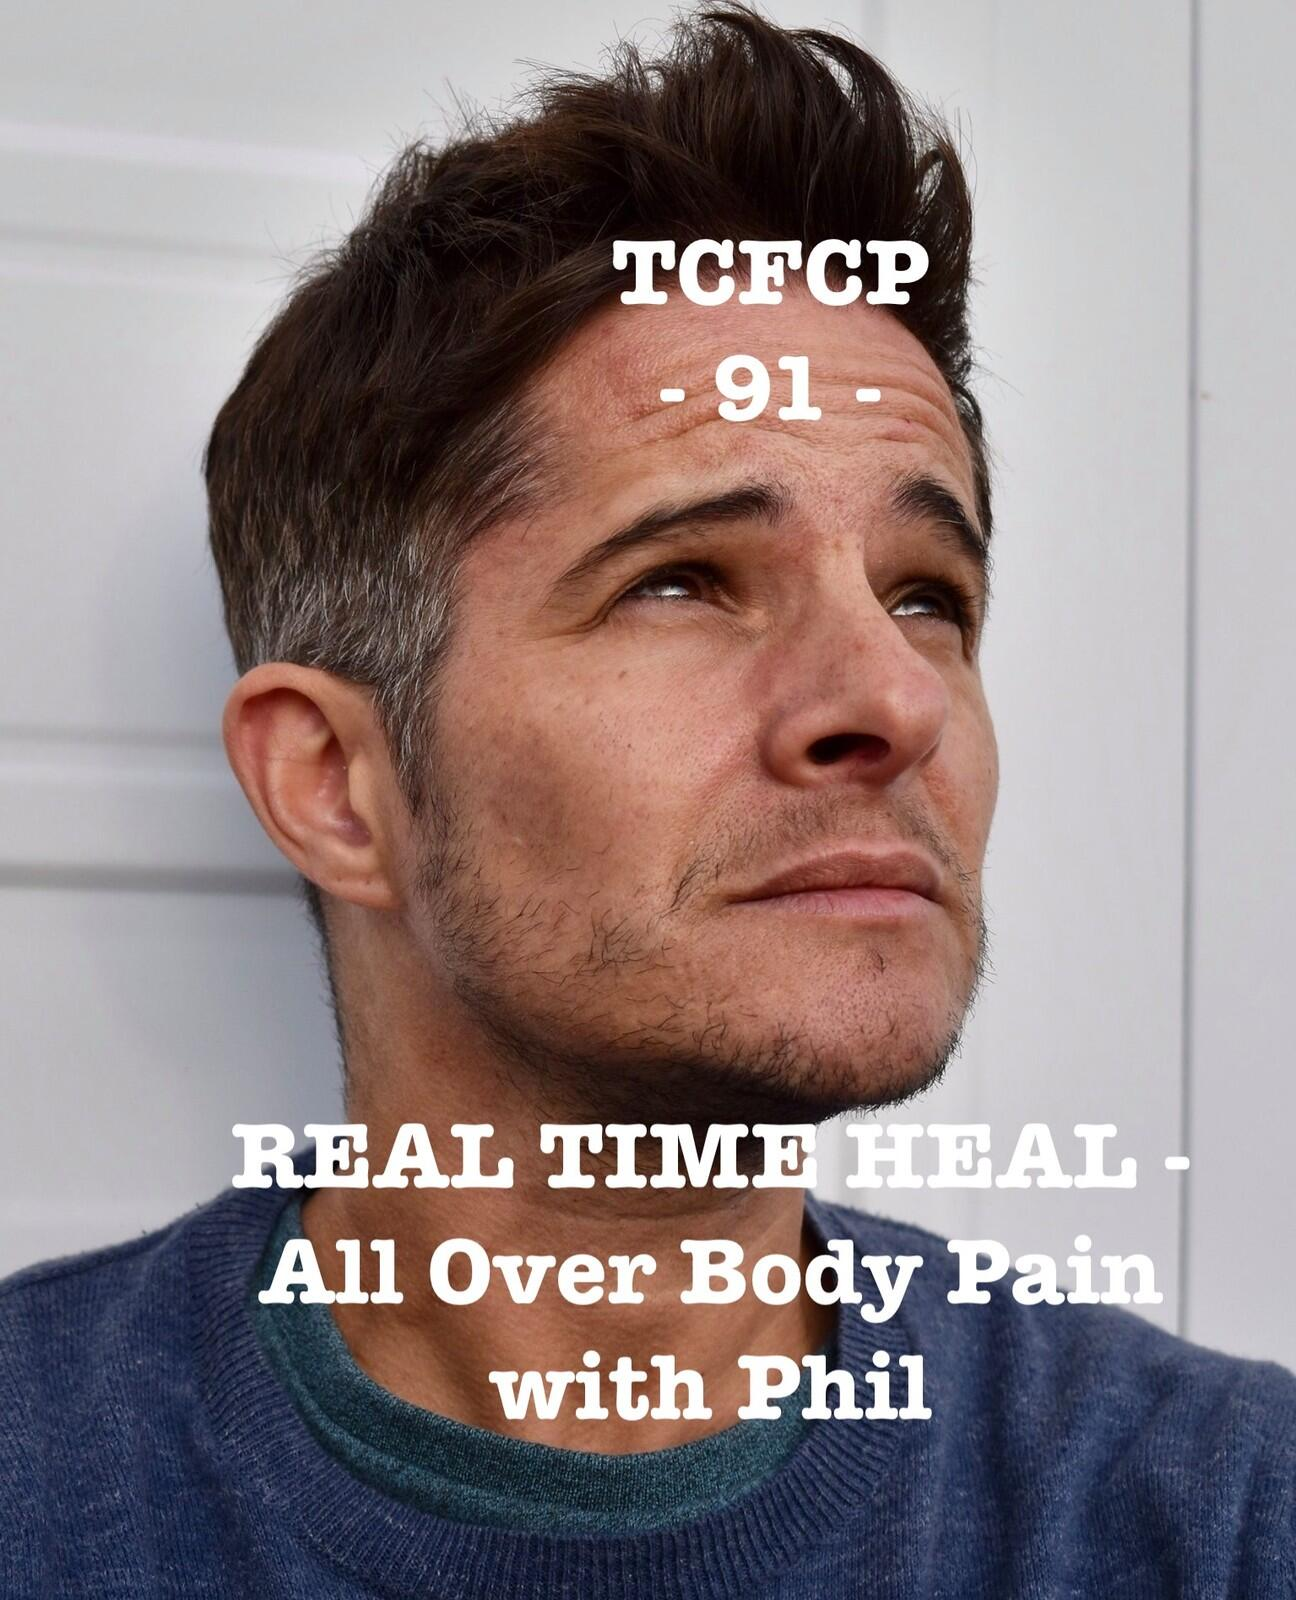 90: Episode 90 - REAL TIME HEAL - All Over Body Pain with Phil